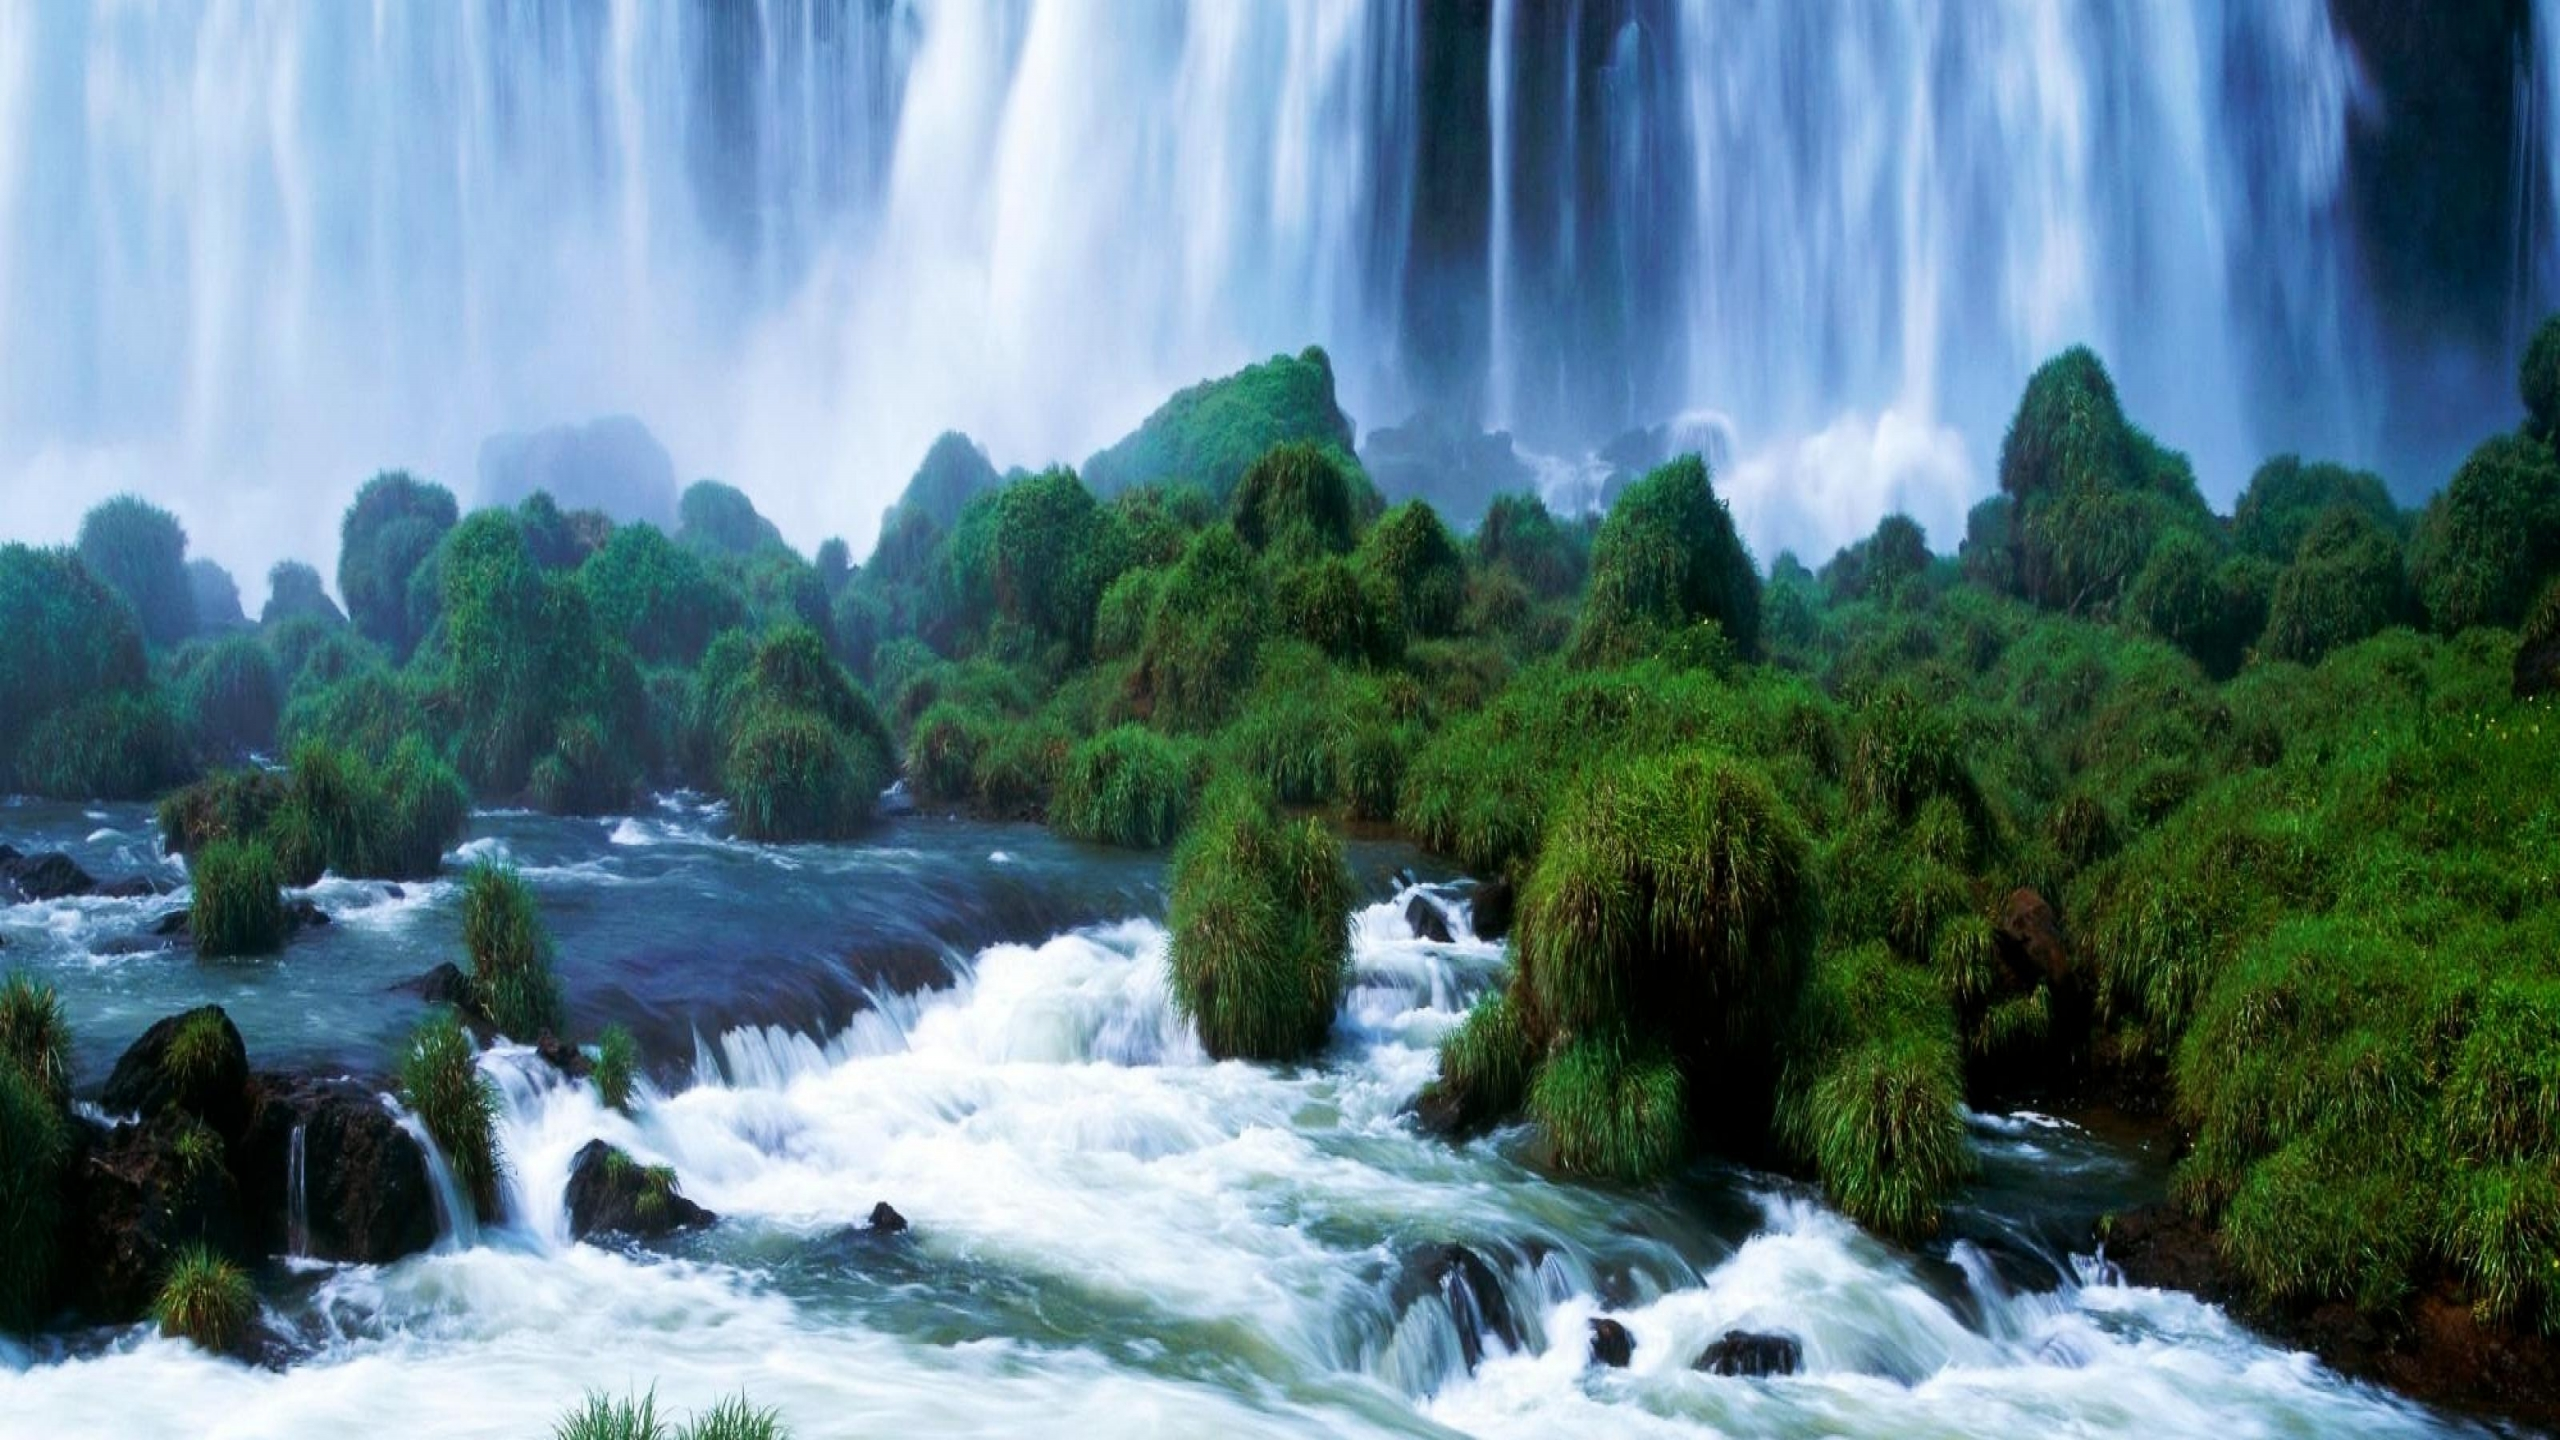 3d Nature Wallpaper Latest Awesome 6ud5y0t0 Iguacu National Park 2560x1440 Download Hd Wallpaper Wallpapertip